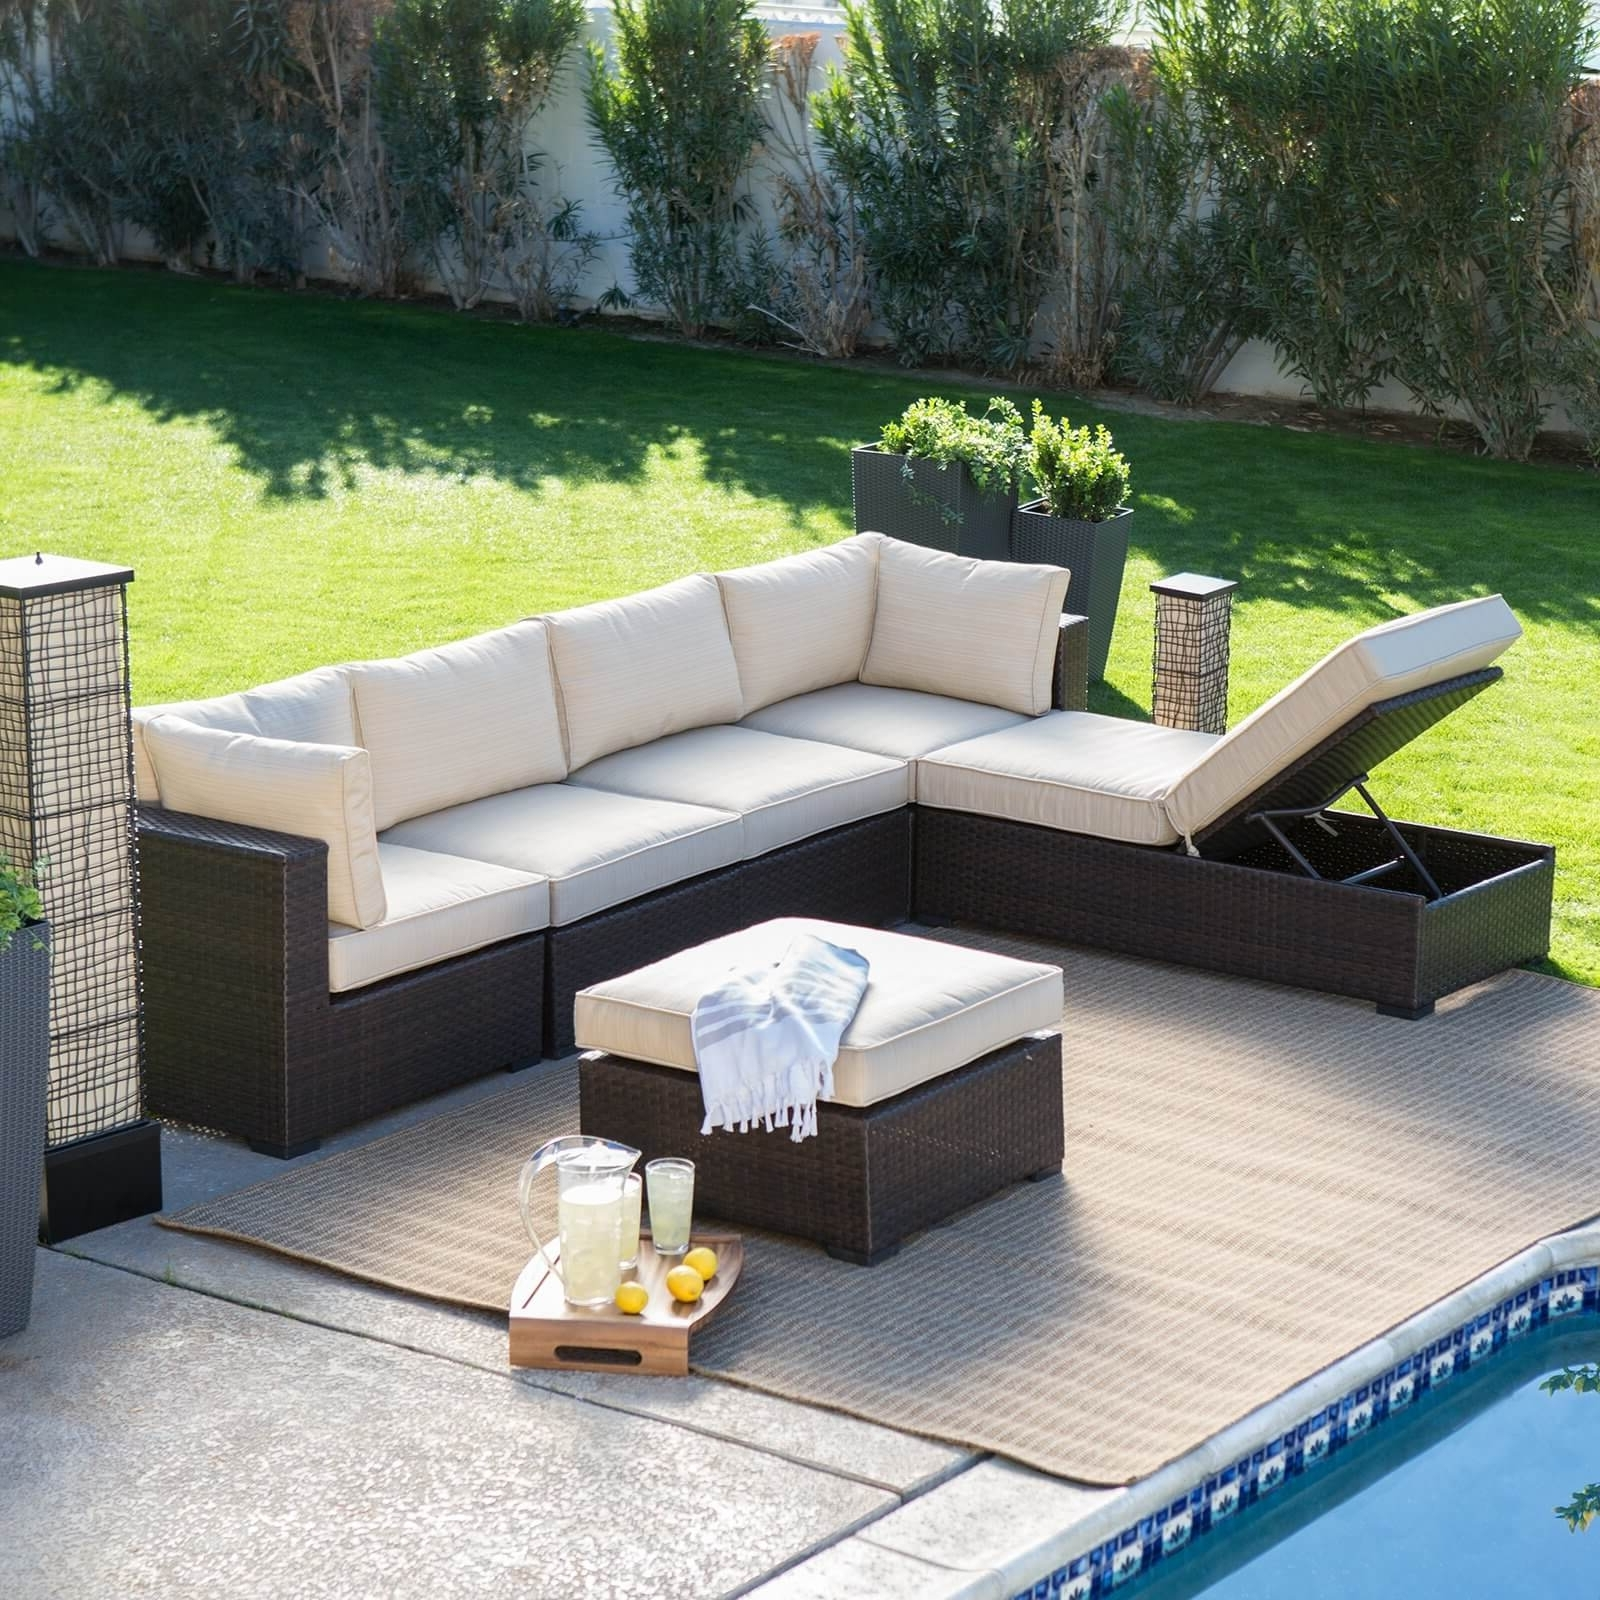 Latest Edmonton Patio Conversation Sets Throughout Patio & Garden : Patio Furniture Sectional Clips Patio Furniture (View 8 of 20)